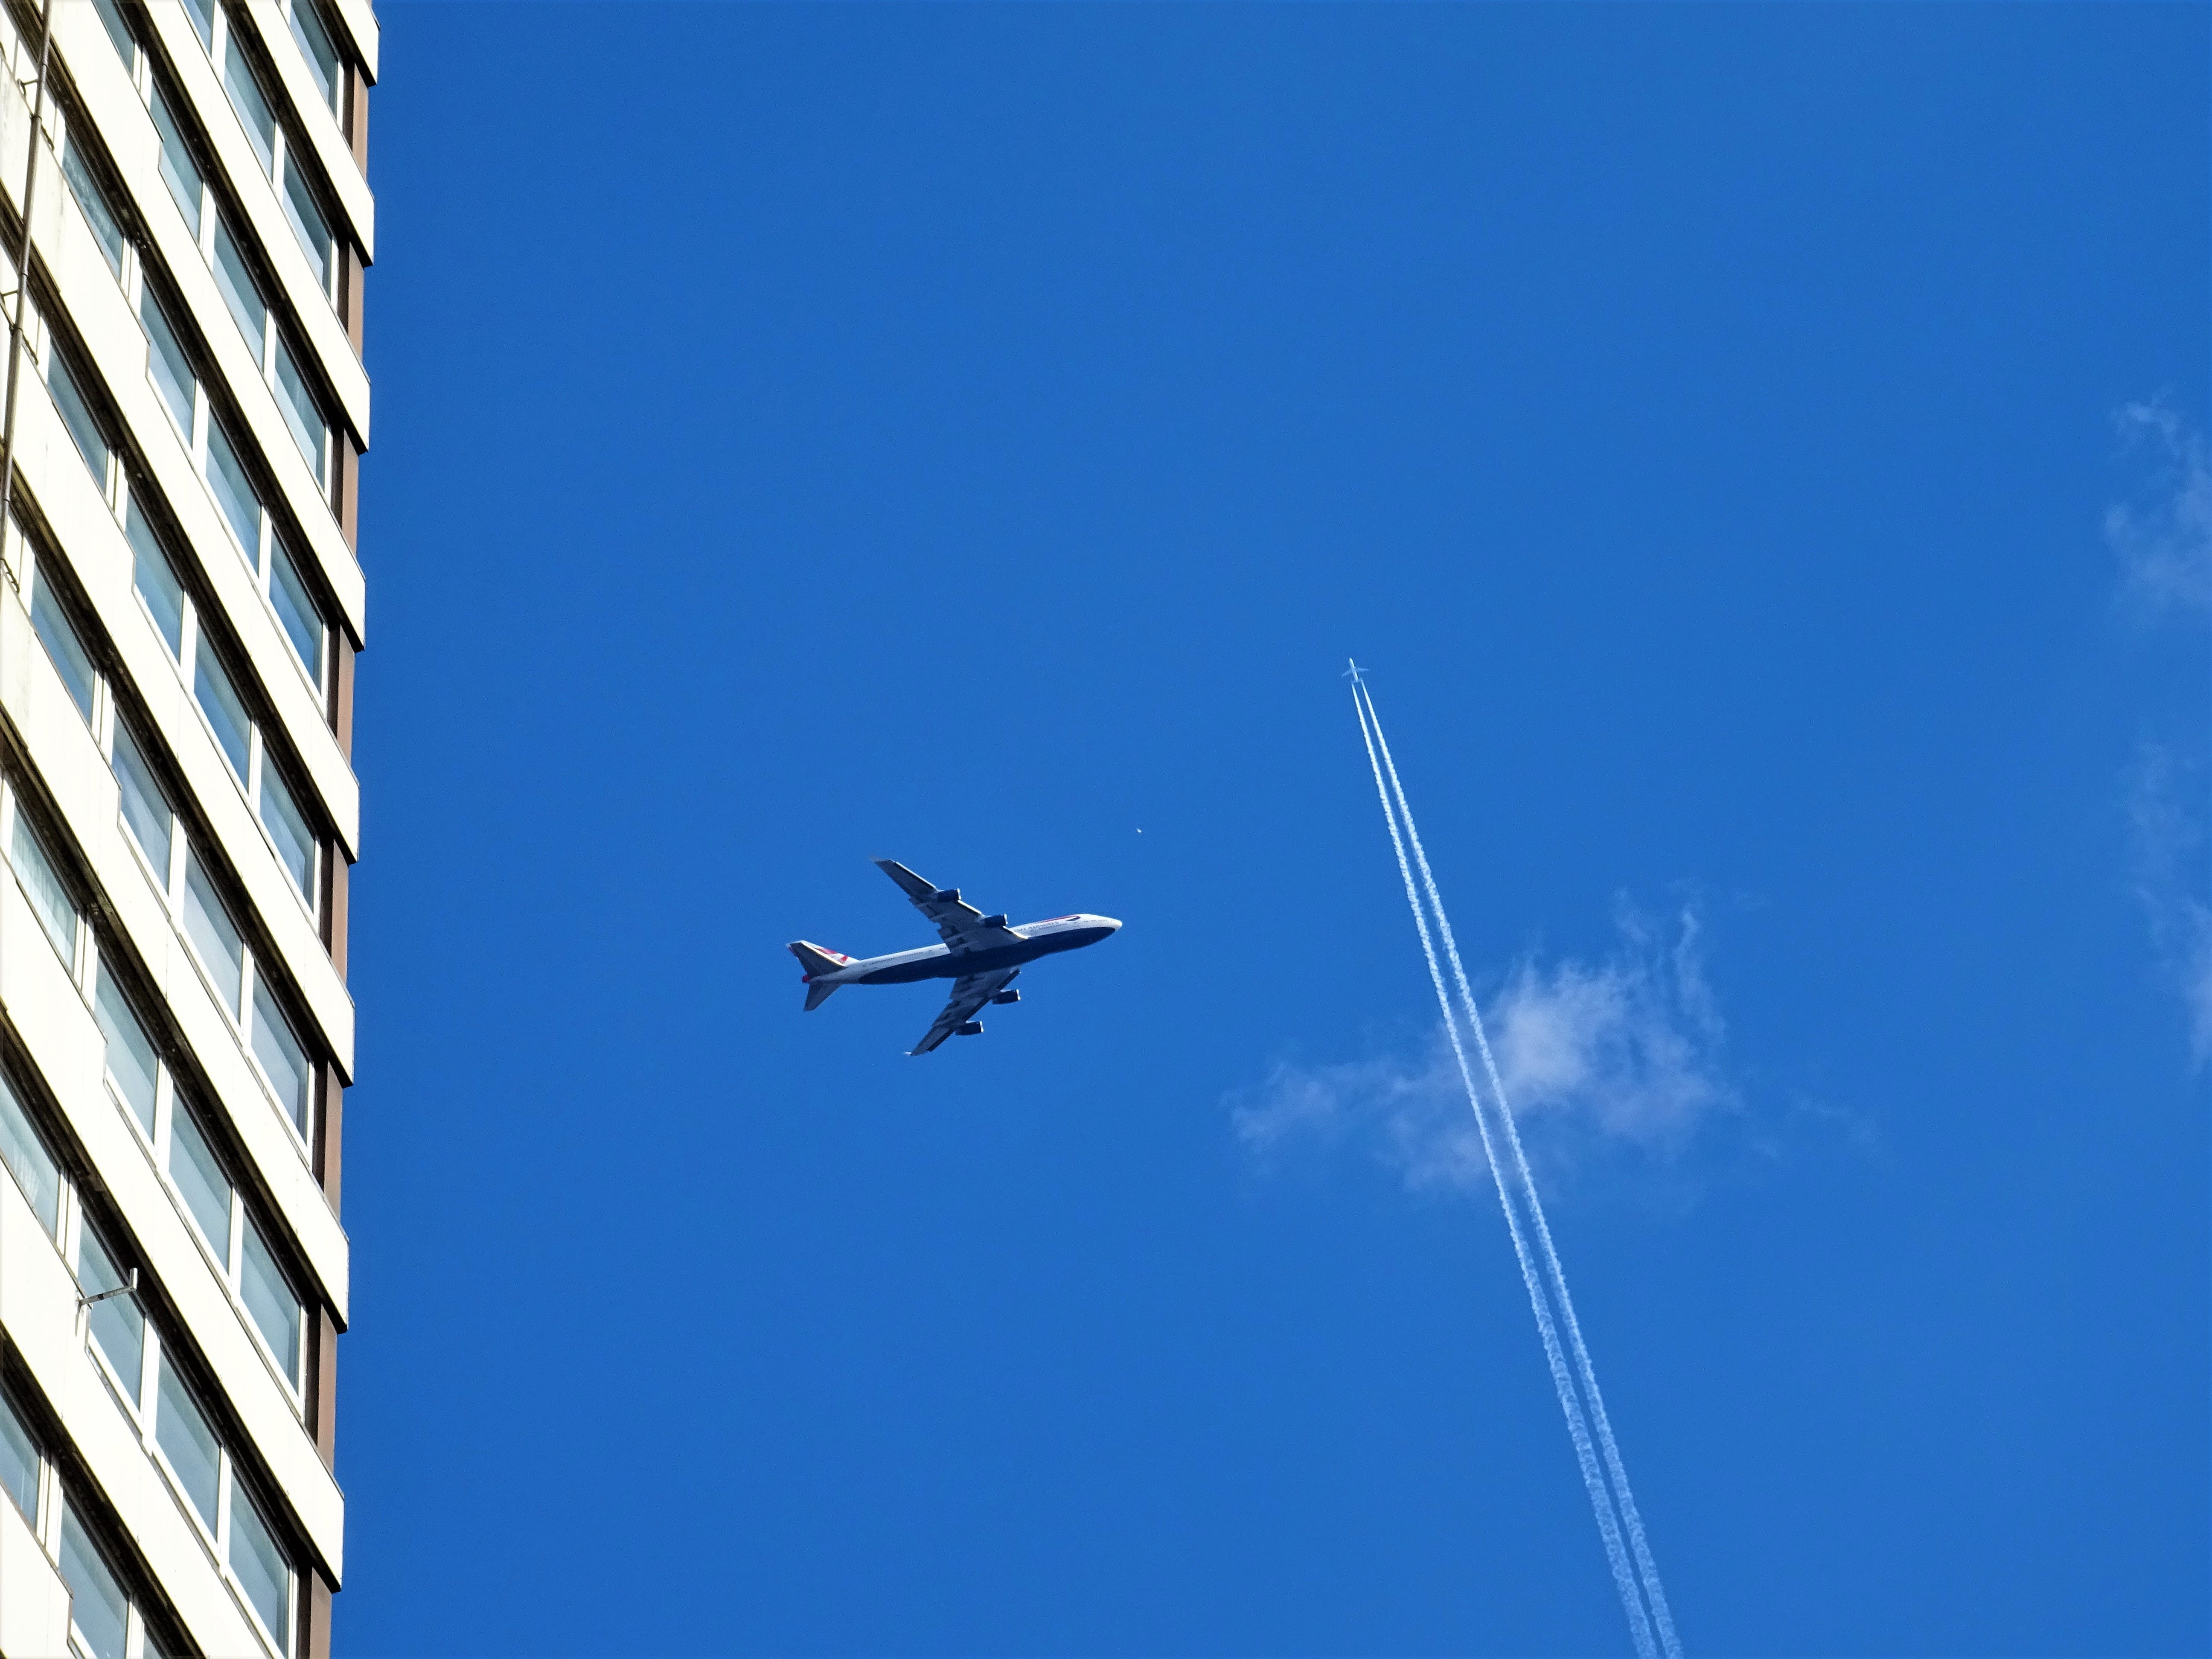 Low-angle Photography of White Plane on Mid-air Near White Concrete Building and White Contrail